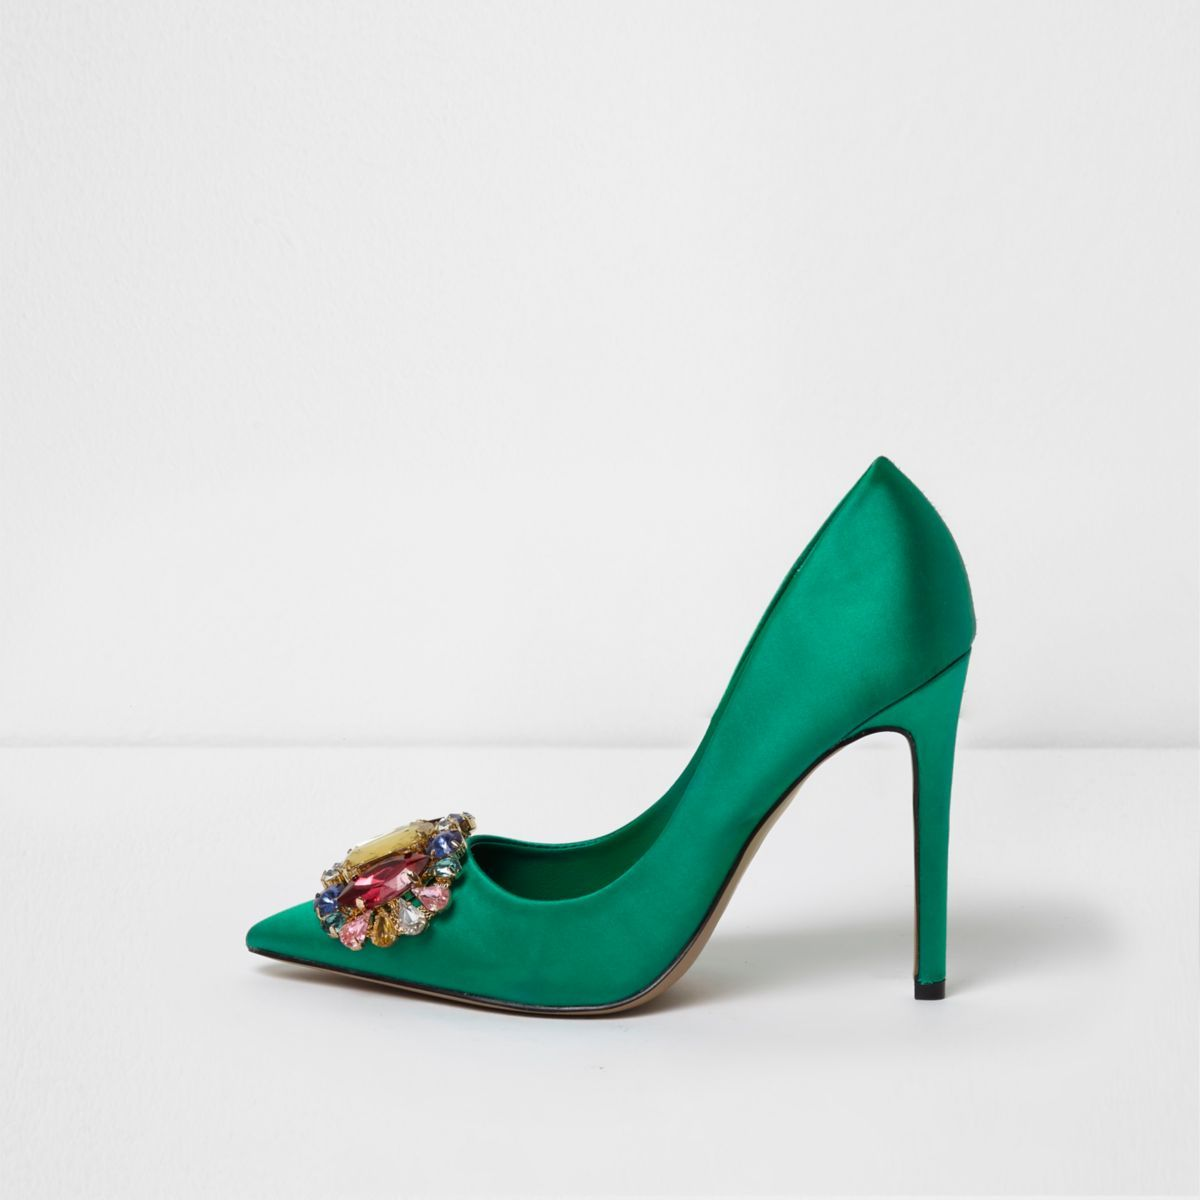 466f908ab9c07 Green satin jewel embellished court shoes - Shoes - Shoes & Boots - women